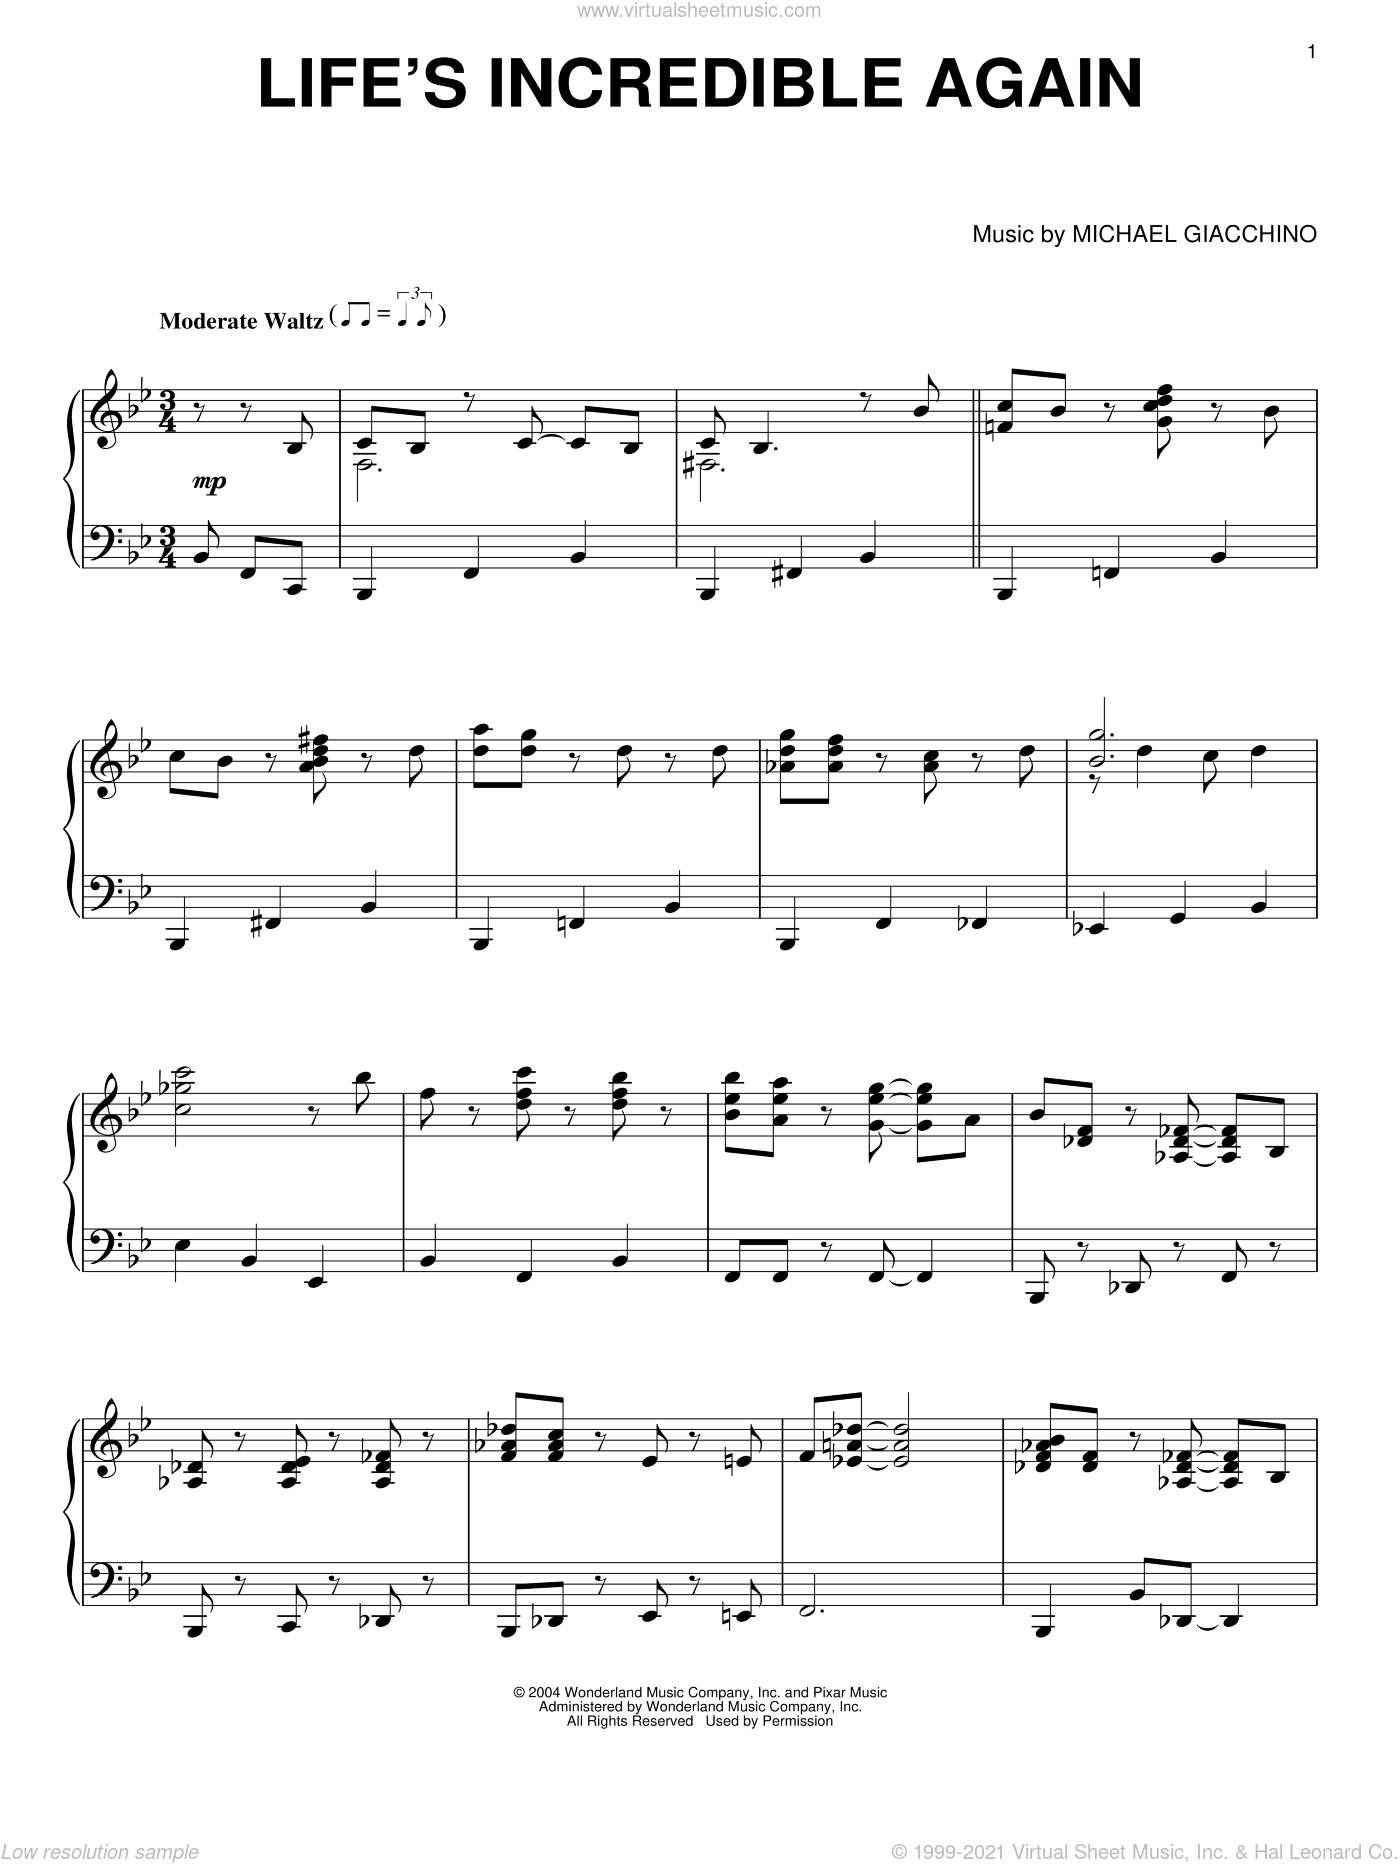 Life's Incredible Again sheet music for piano solo by Michael Giacchino and The Incredibles (Movie), intermediate skill level